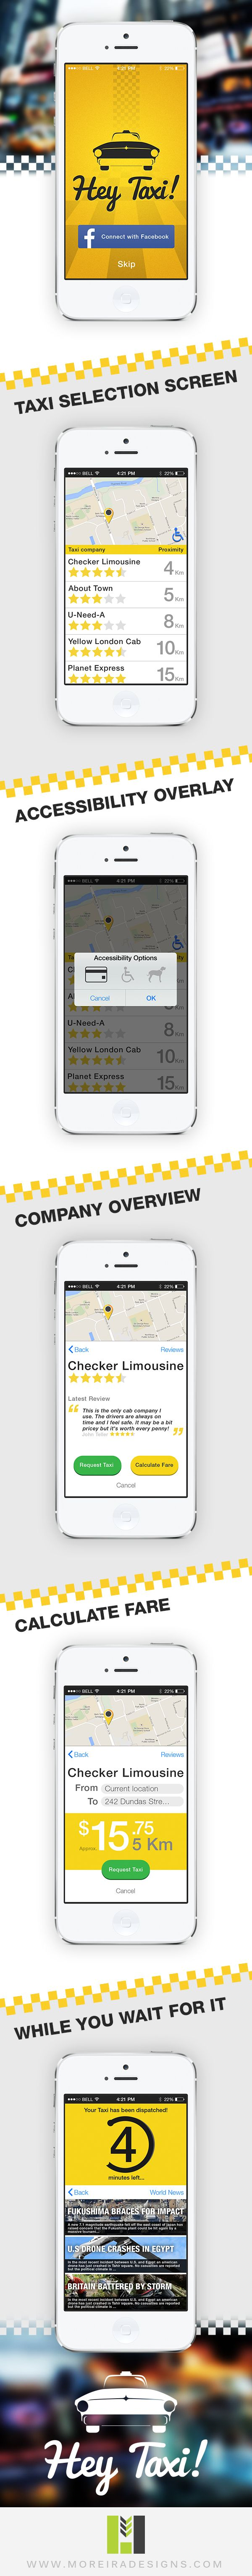 Hey Taxi - Application Concept by Lucas Moreira, via Behance